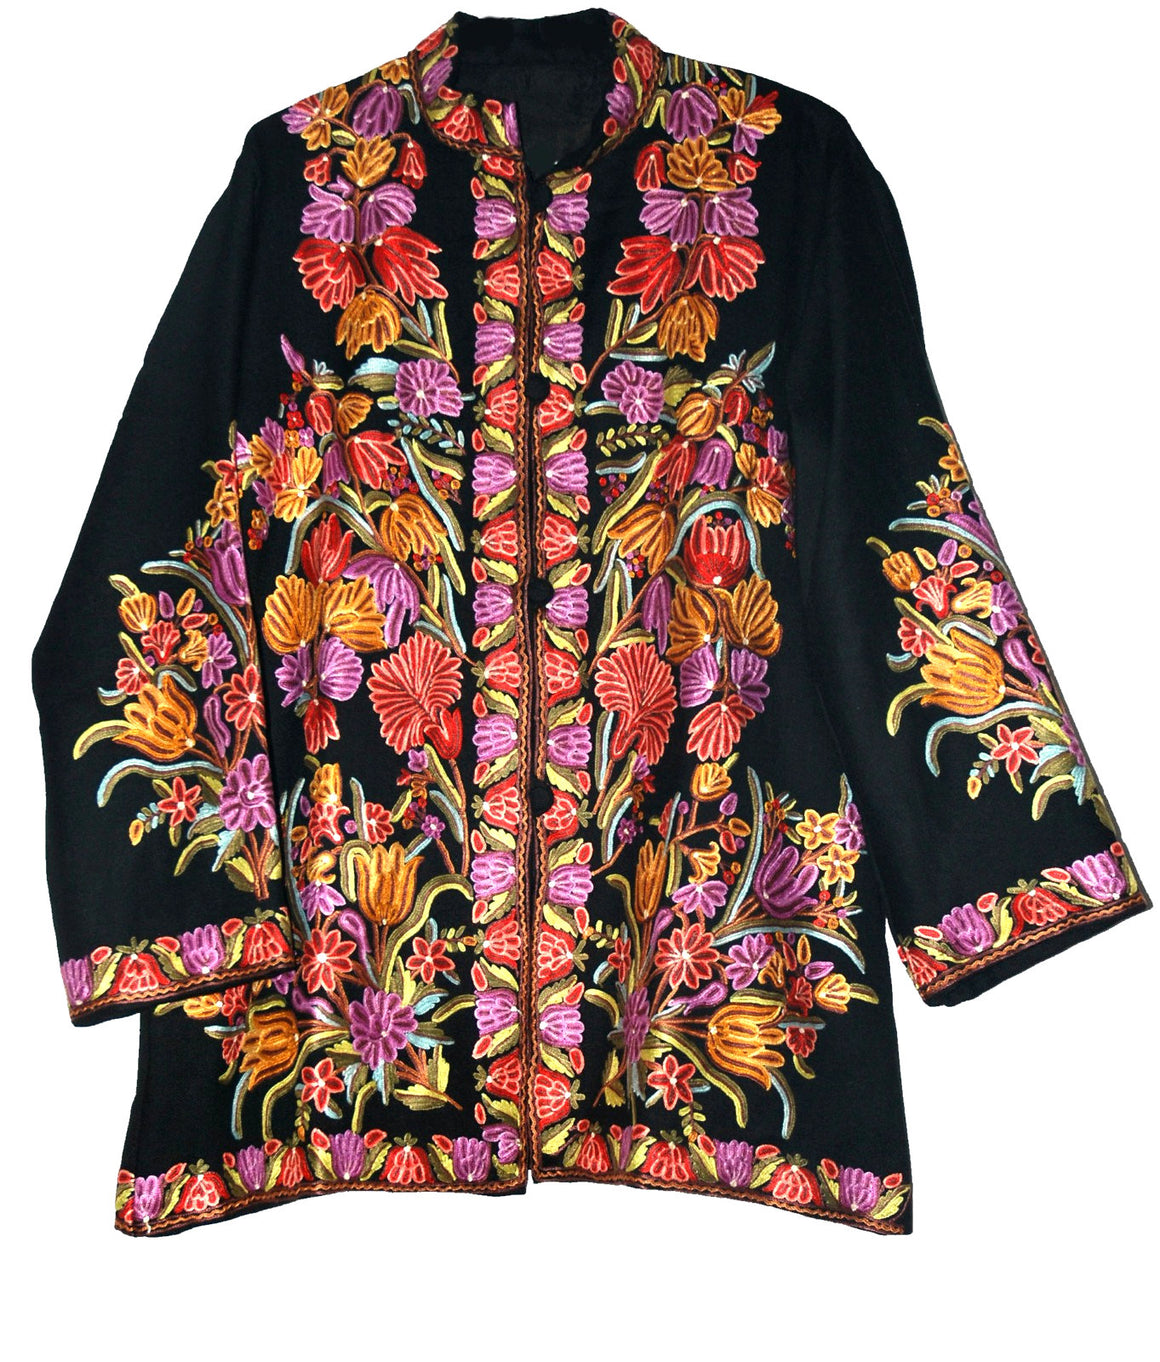 Woolen Short Jacket Black, Multicolor Embroidery #AO-036